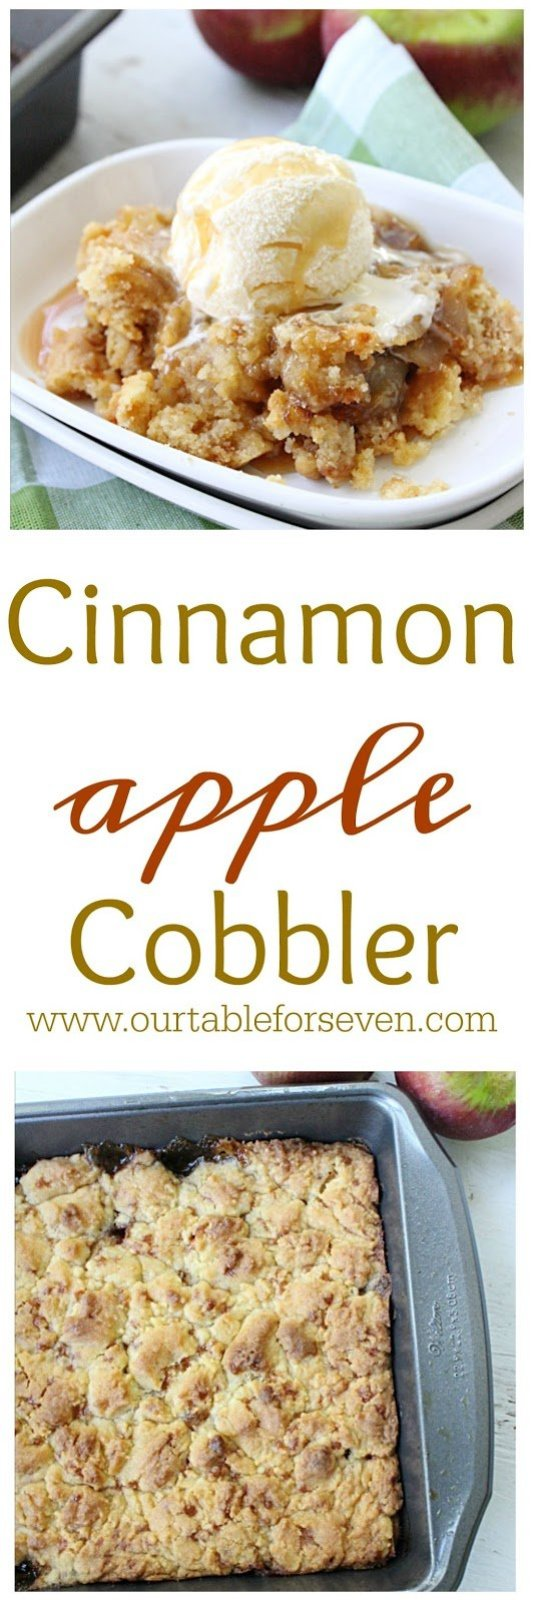 Cinnamon Apple Cobbler from Table for Seven